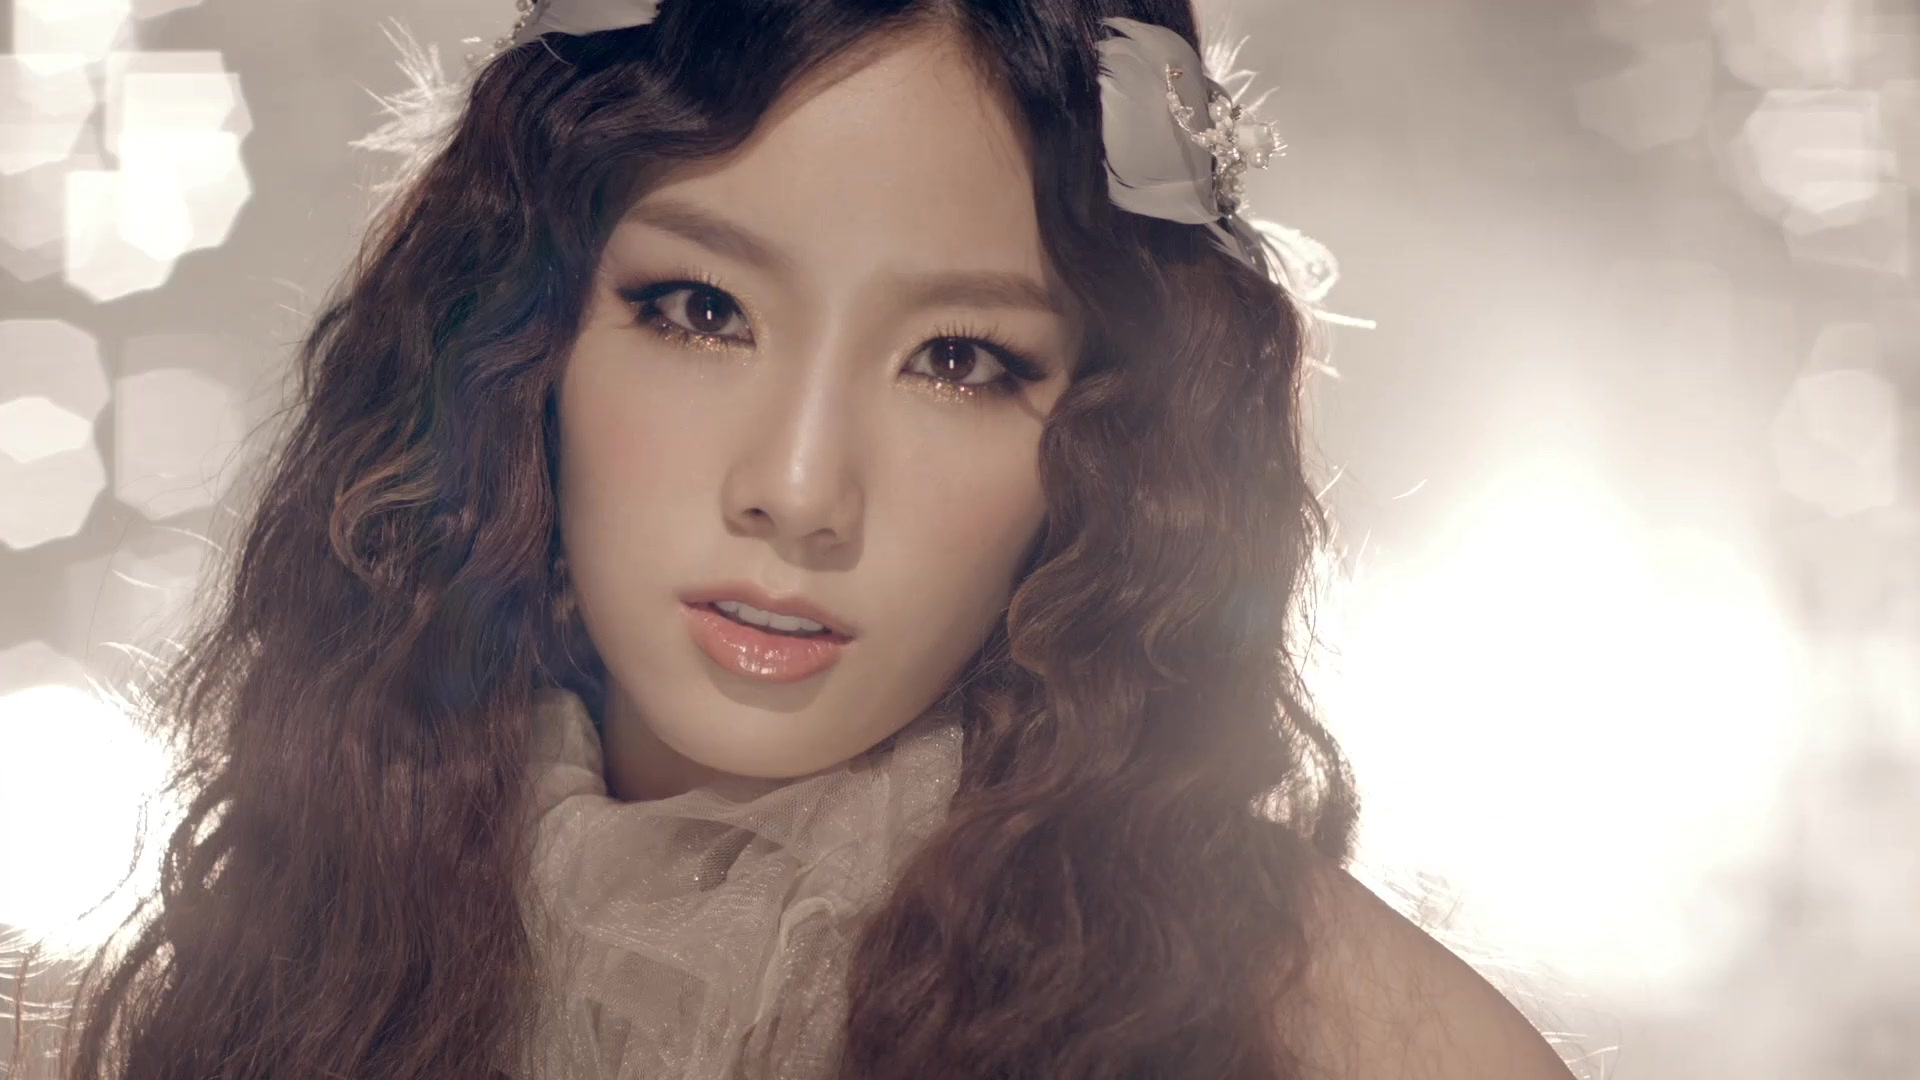 Taeyeon - The Boys mv - S♥NEISM Image (27080603) - Fanpop Taeyeon The Boys